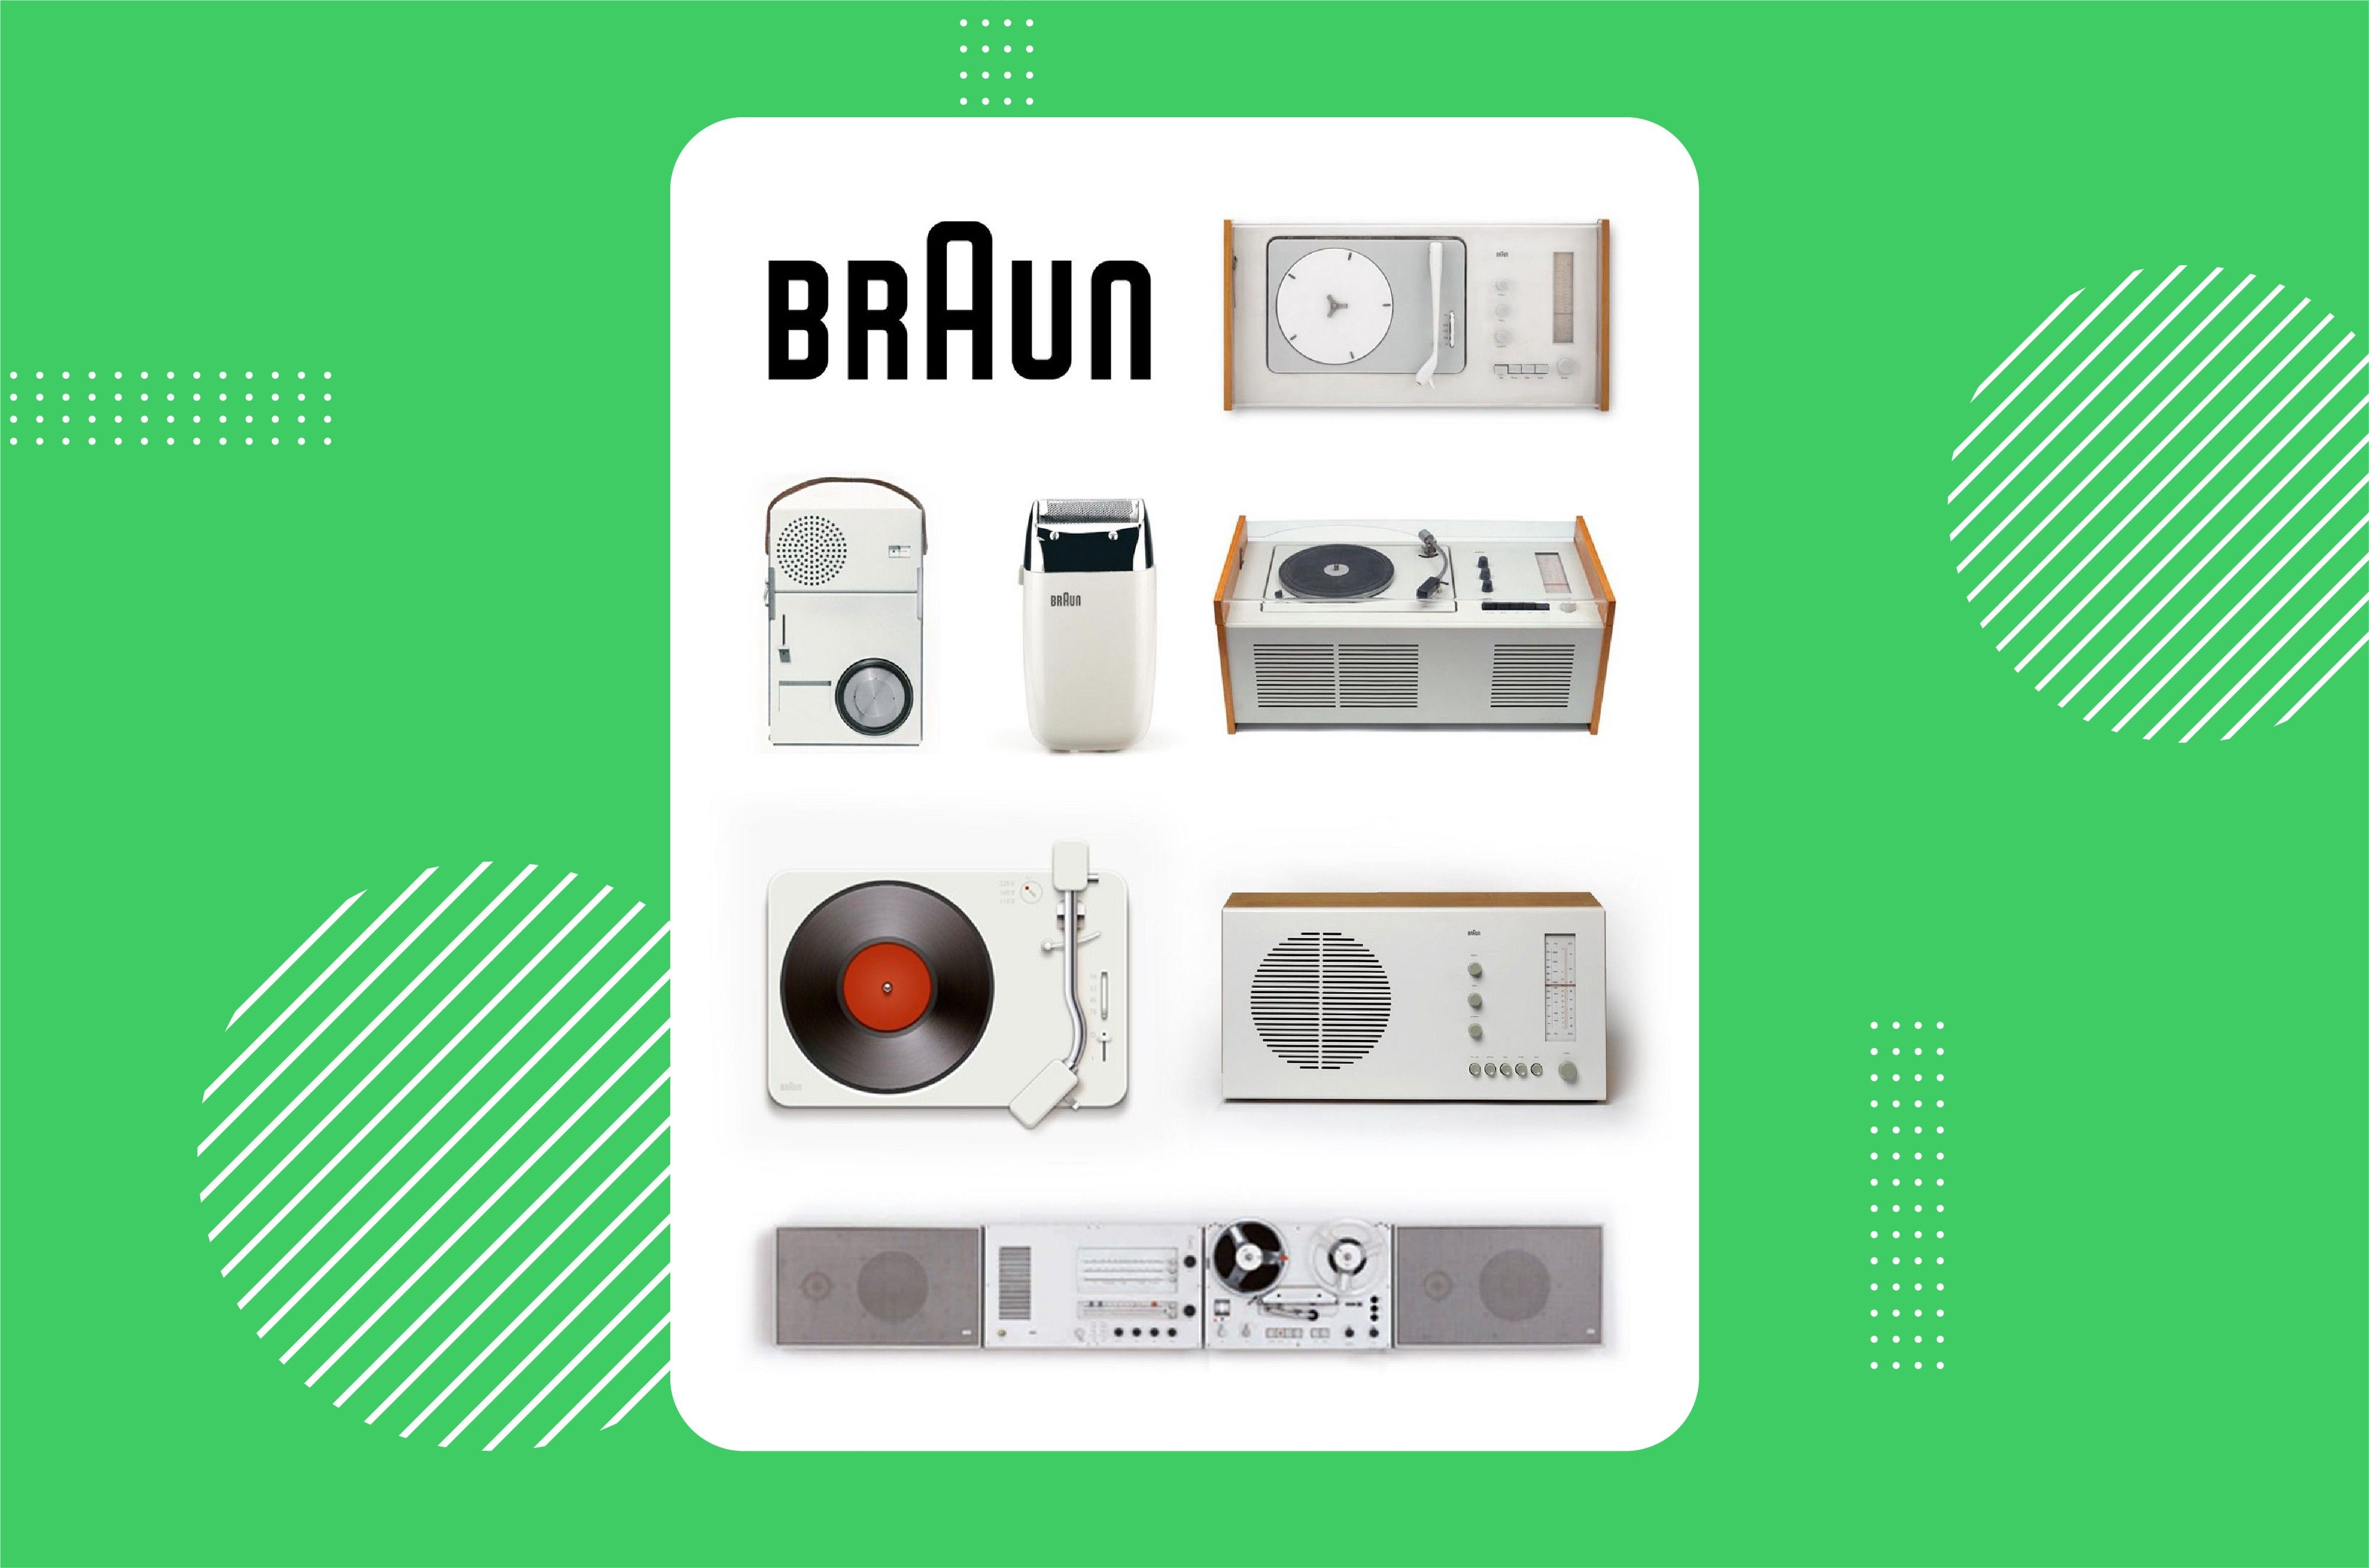 A family of Braun products from the article on 11 life lessons from influential product designer Dieter Rams